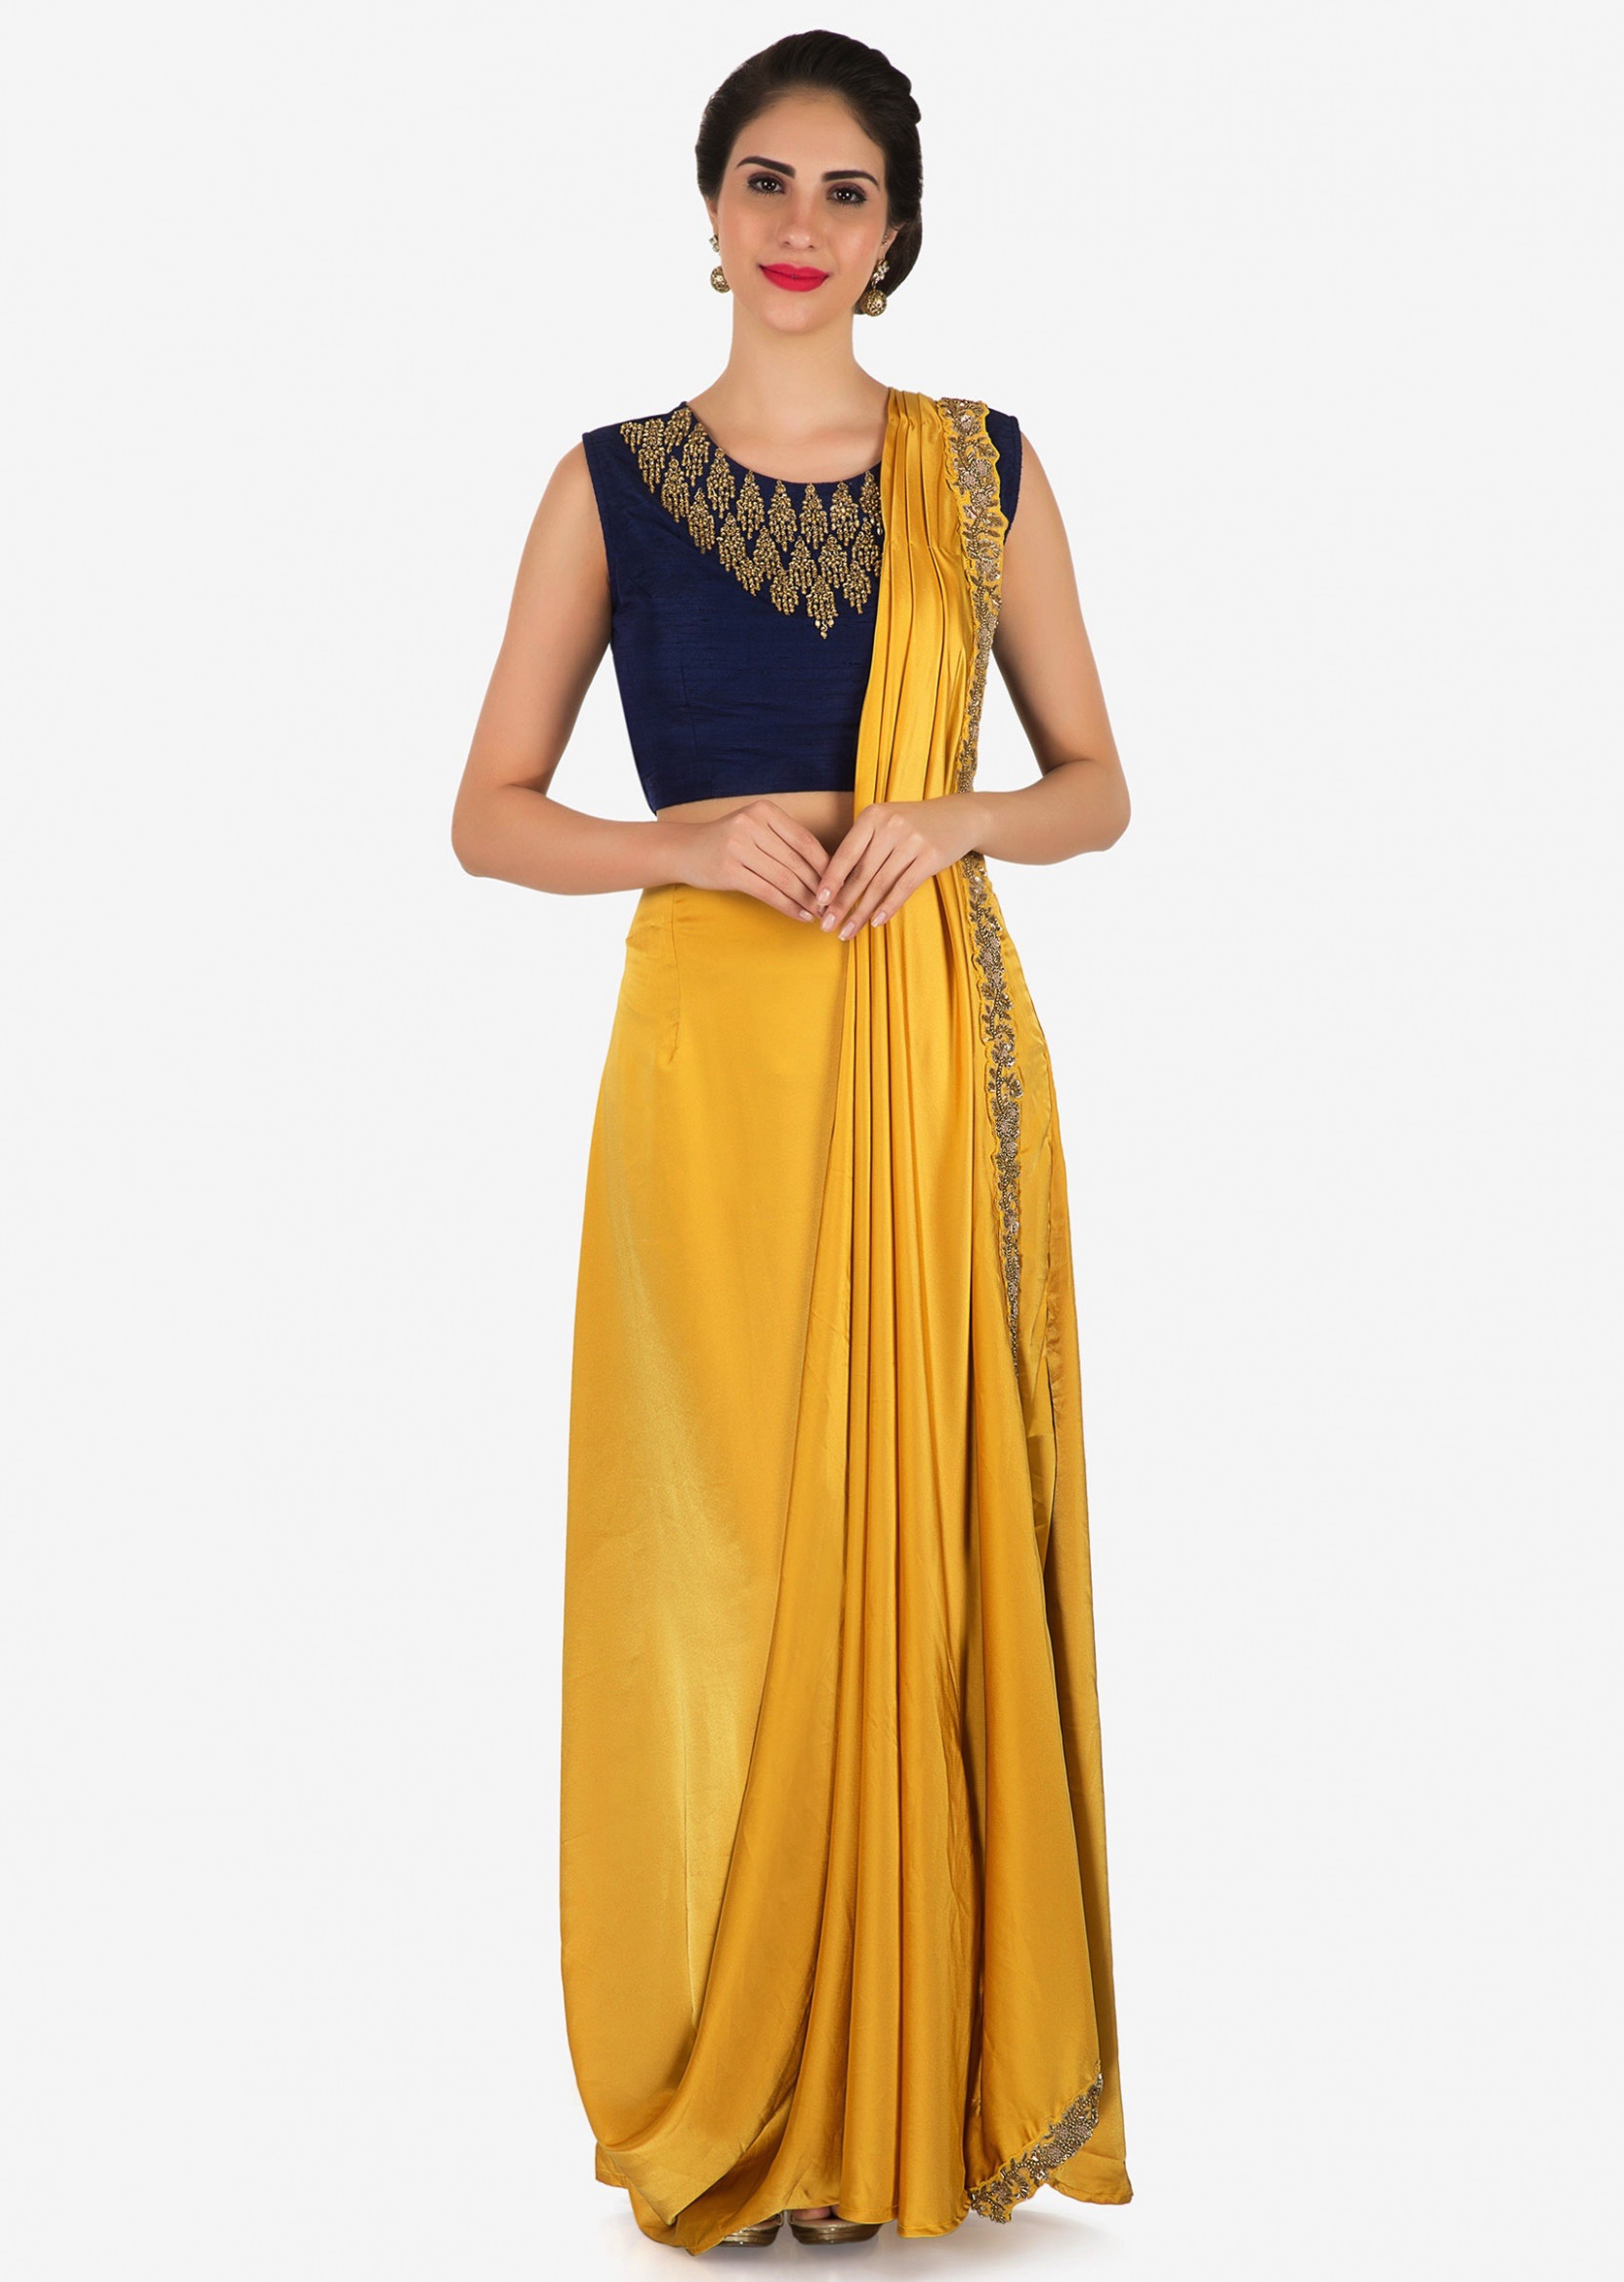 Mustard pre stitched saree with navy blue raw silk blouse